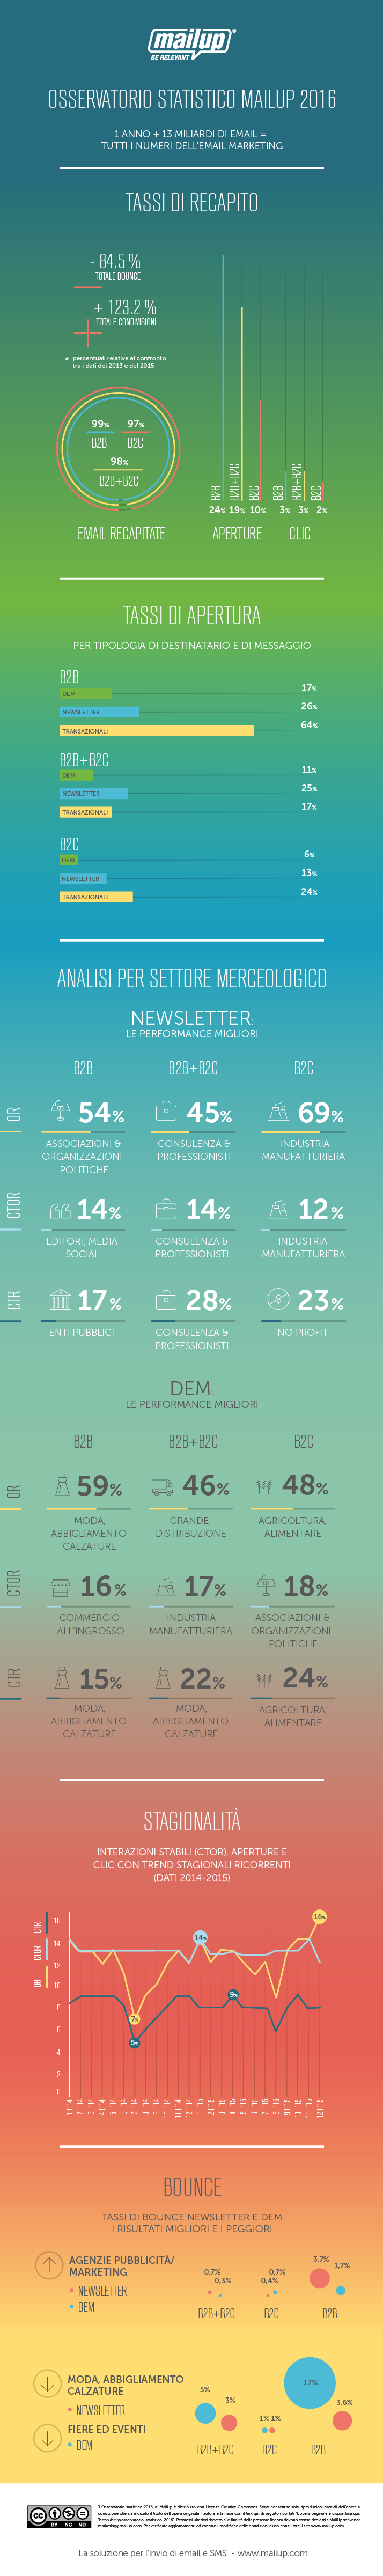 Infografica Email Marketing 2016 MailUp